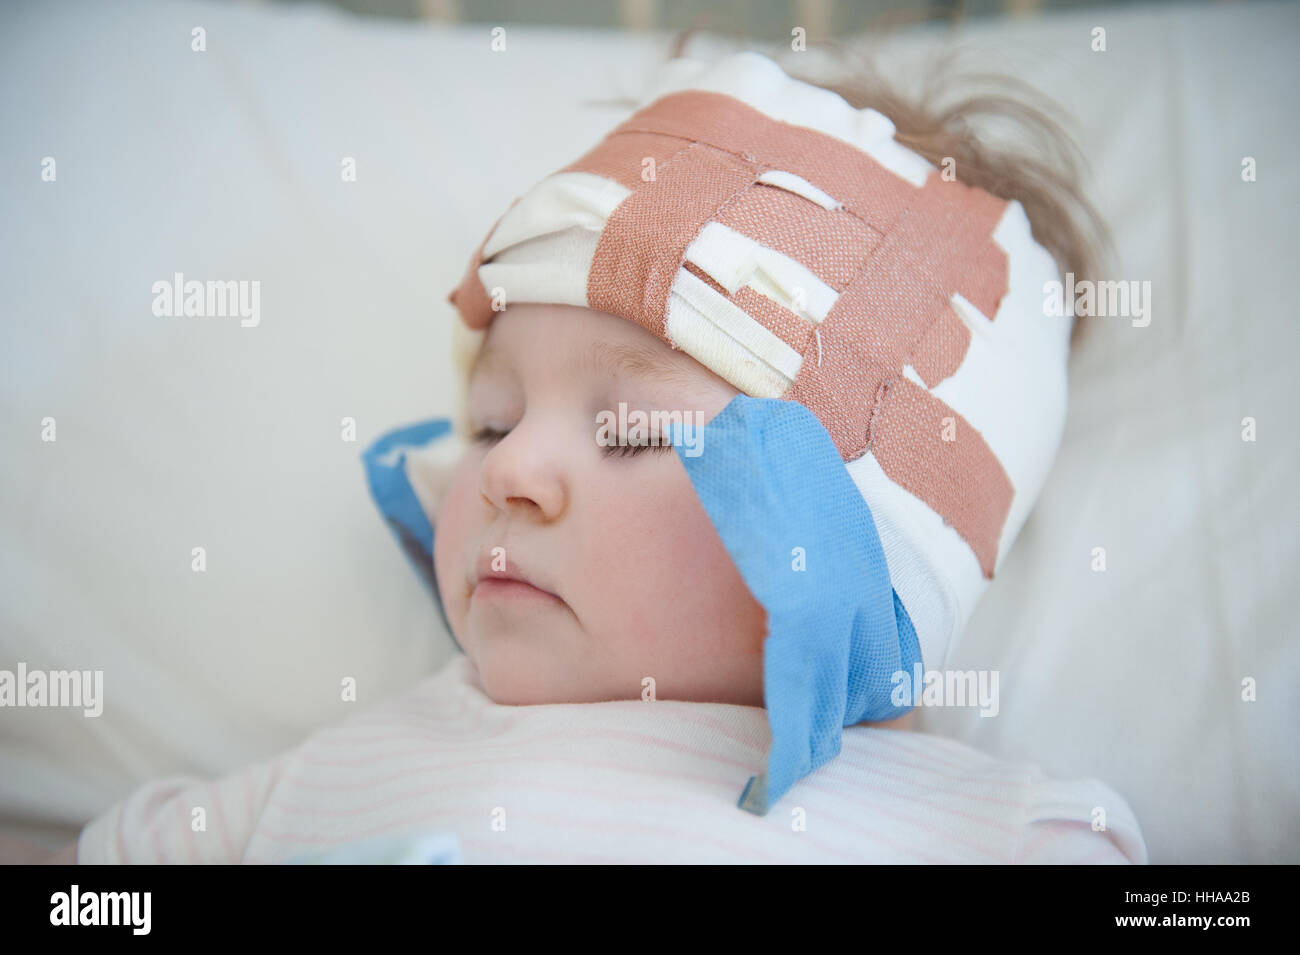 a baby girl lying asleep in a hospital bed with her head bandaged